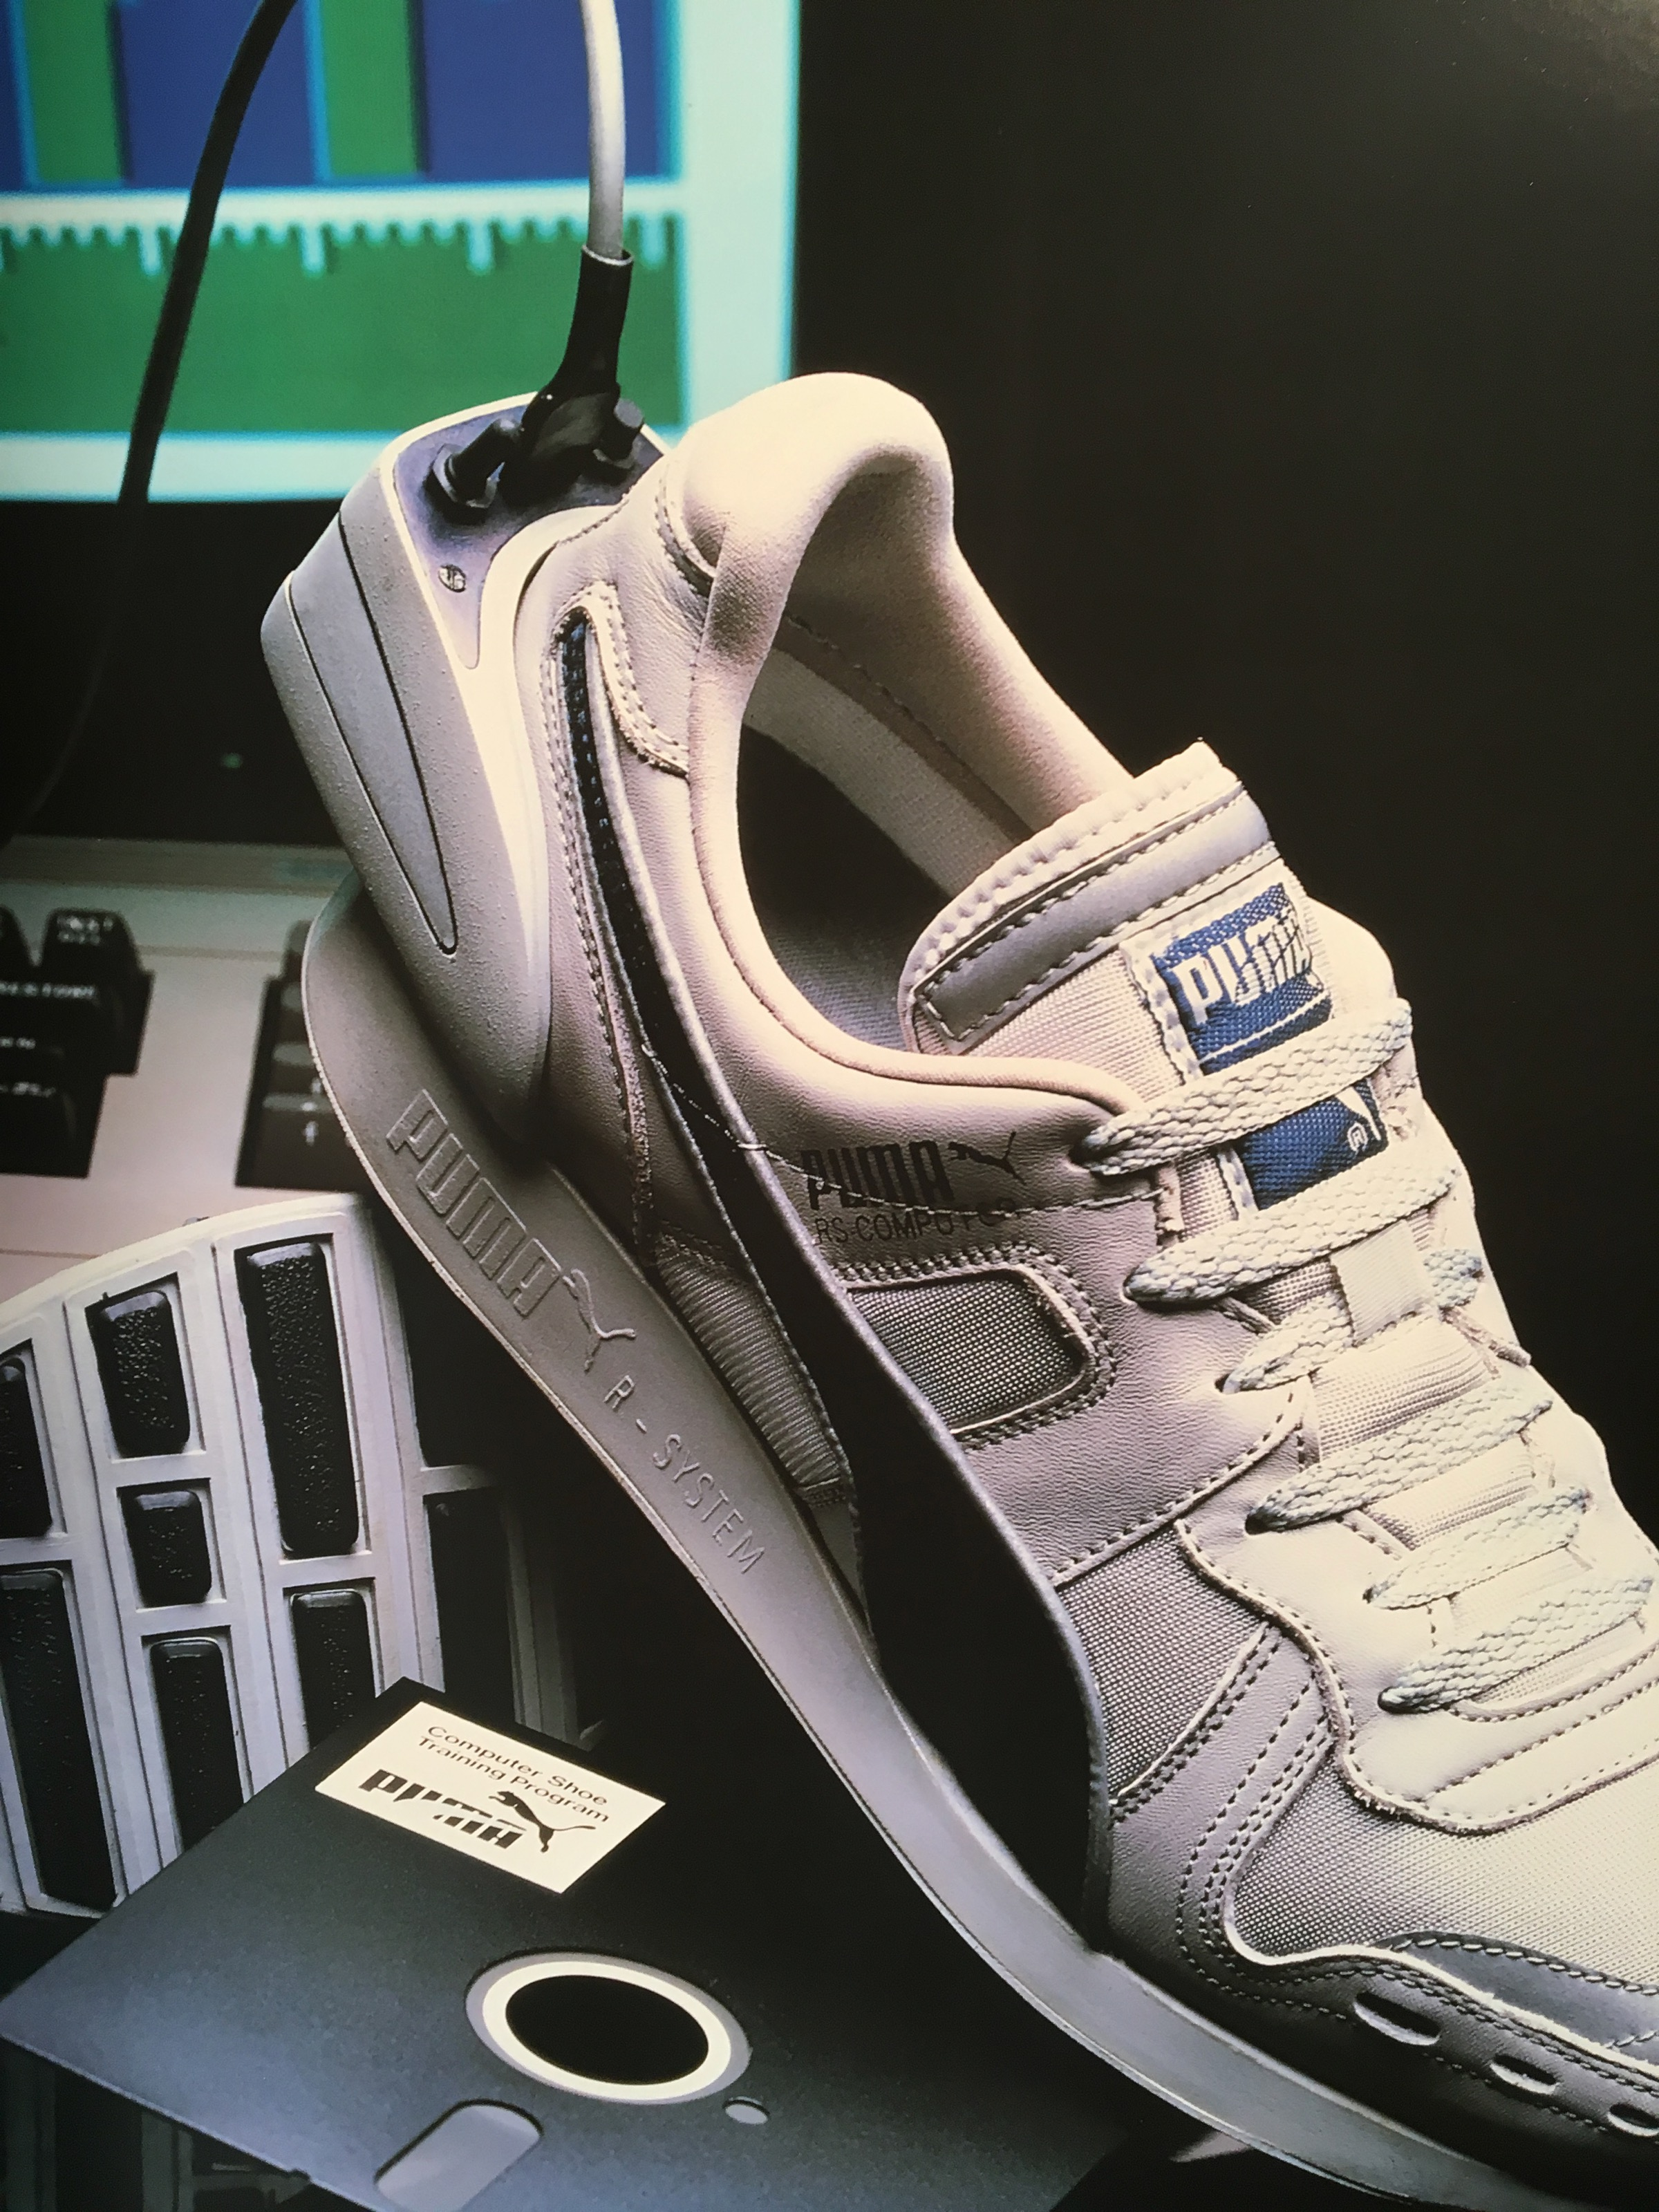 44e2e1a39c16 The Roland TR-808 is getting its own pair of Puma shoes - CDM Create ...